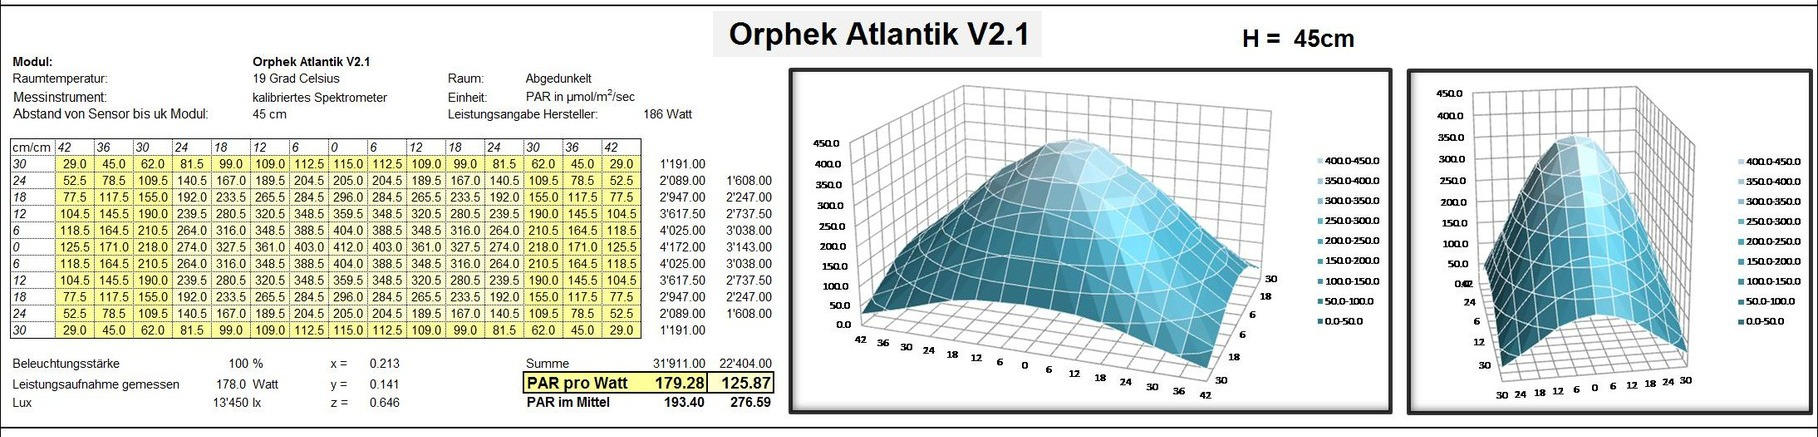 orphek-الأطلسي Atlantik PAR-MAP-v2.1 45cm